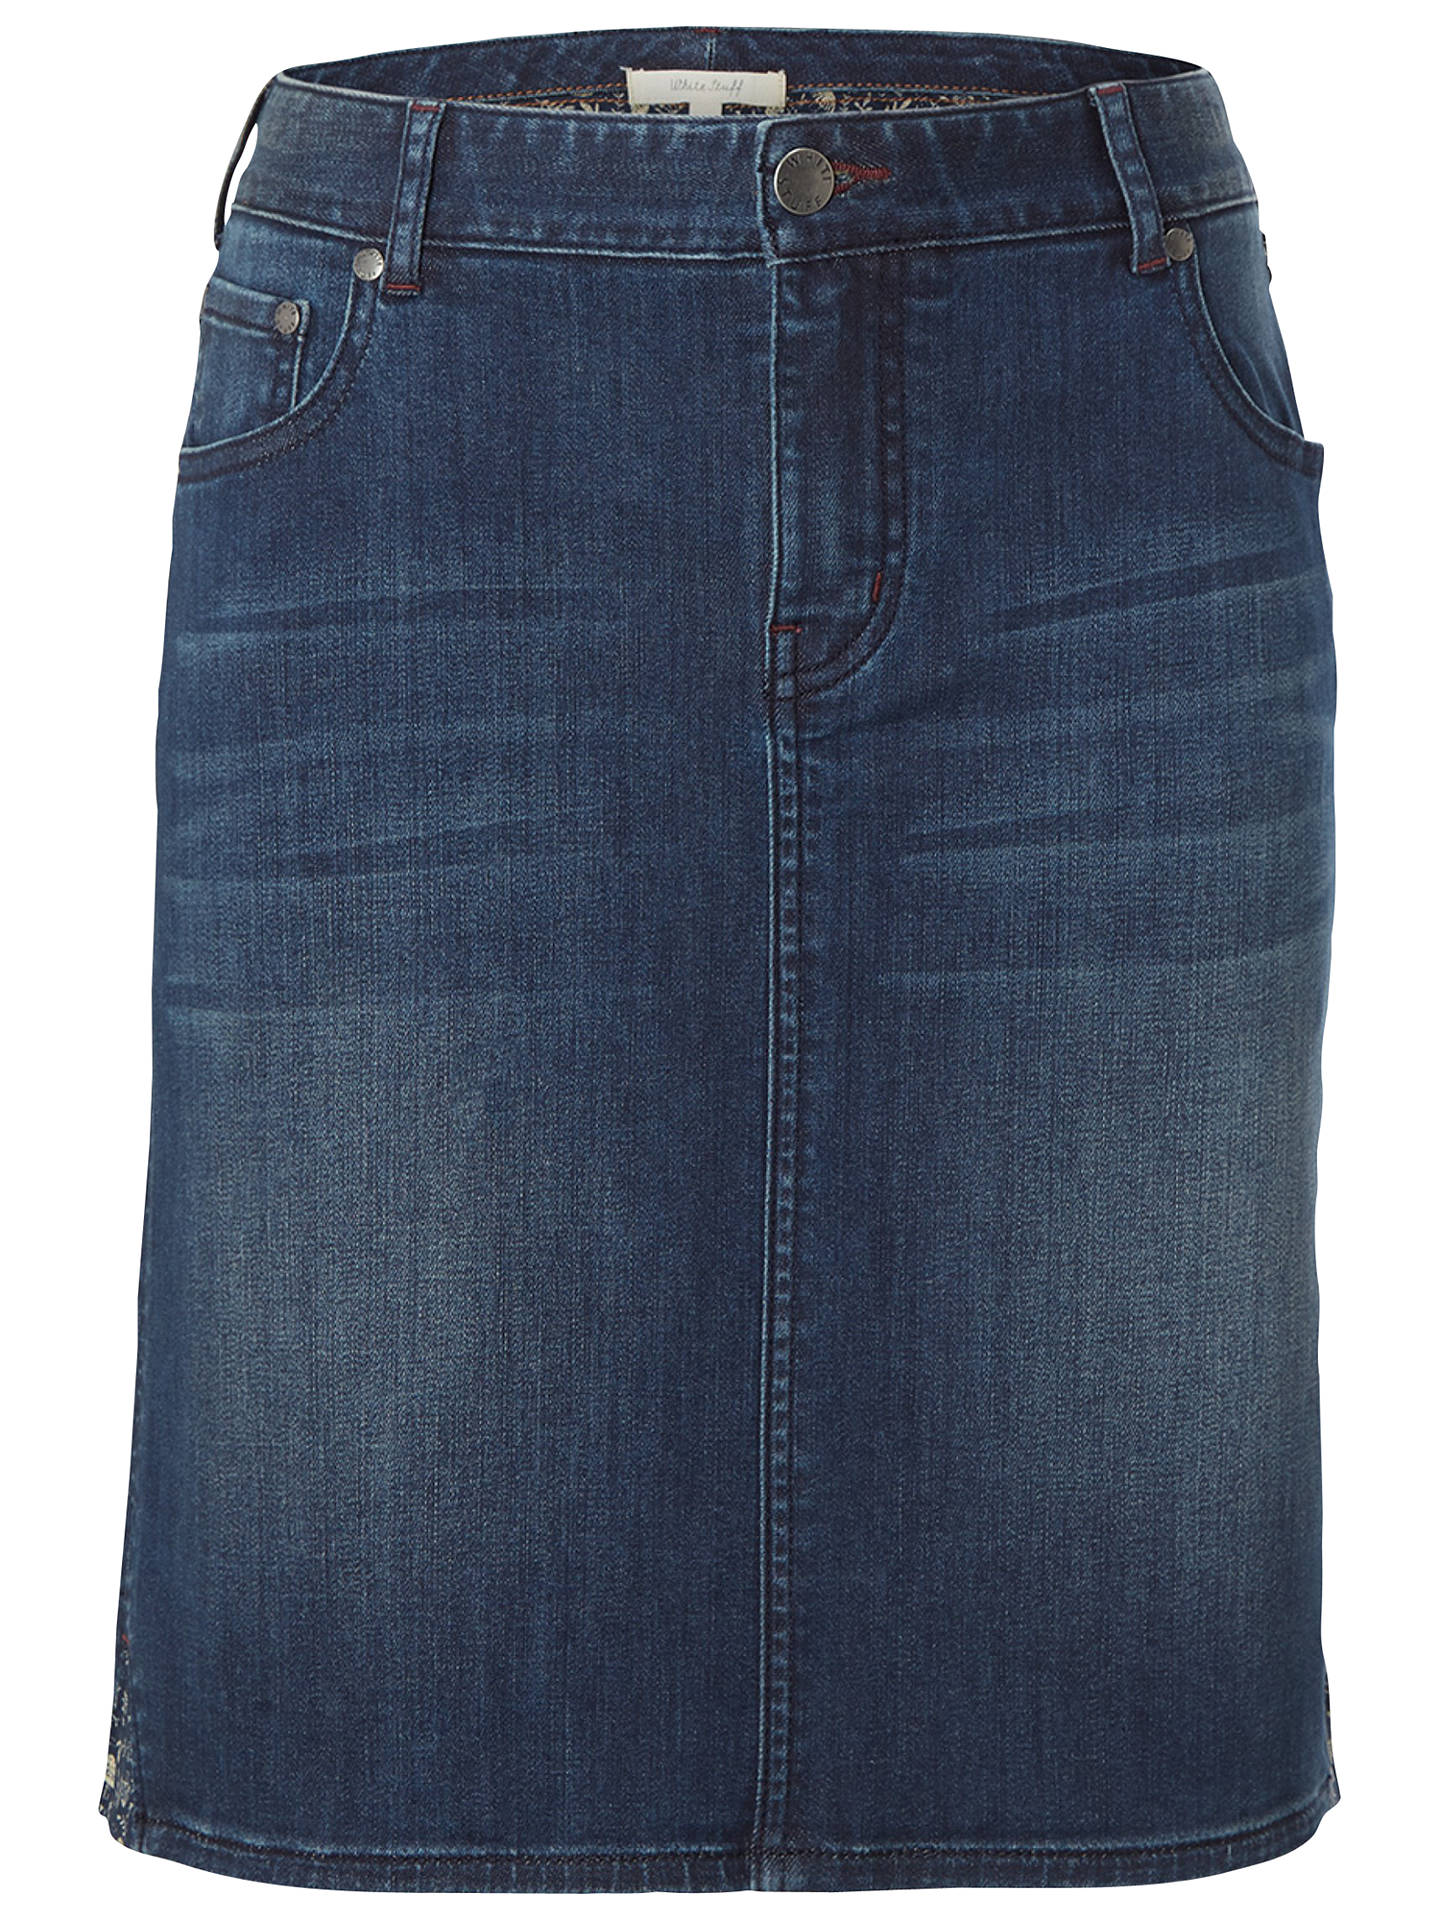 a30eaa5644 Buy White Stuff Country Walk Skirt, Denim, 6 Online at johnlewis.com ...